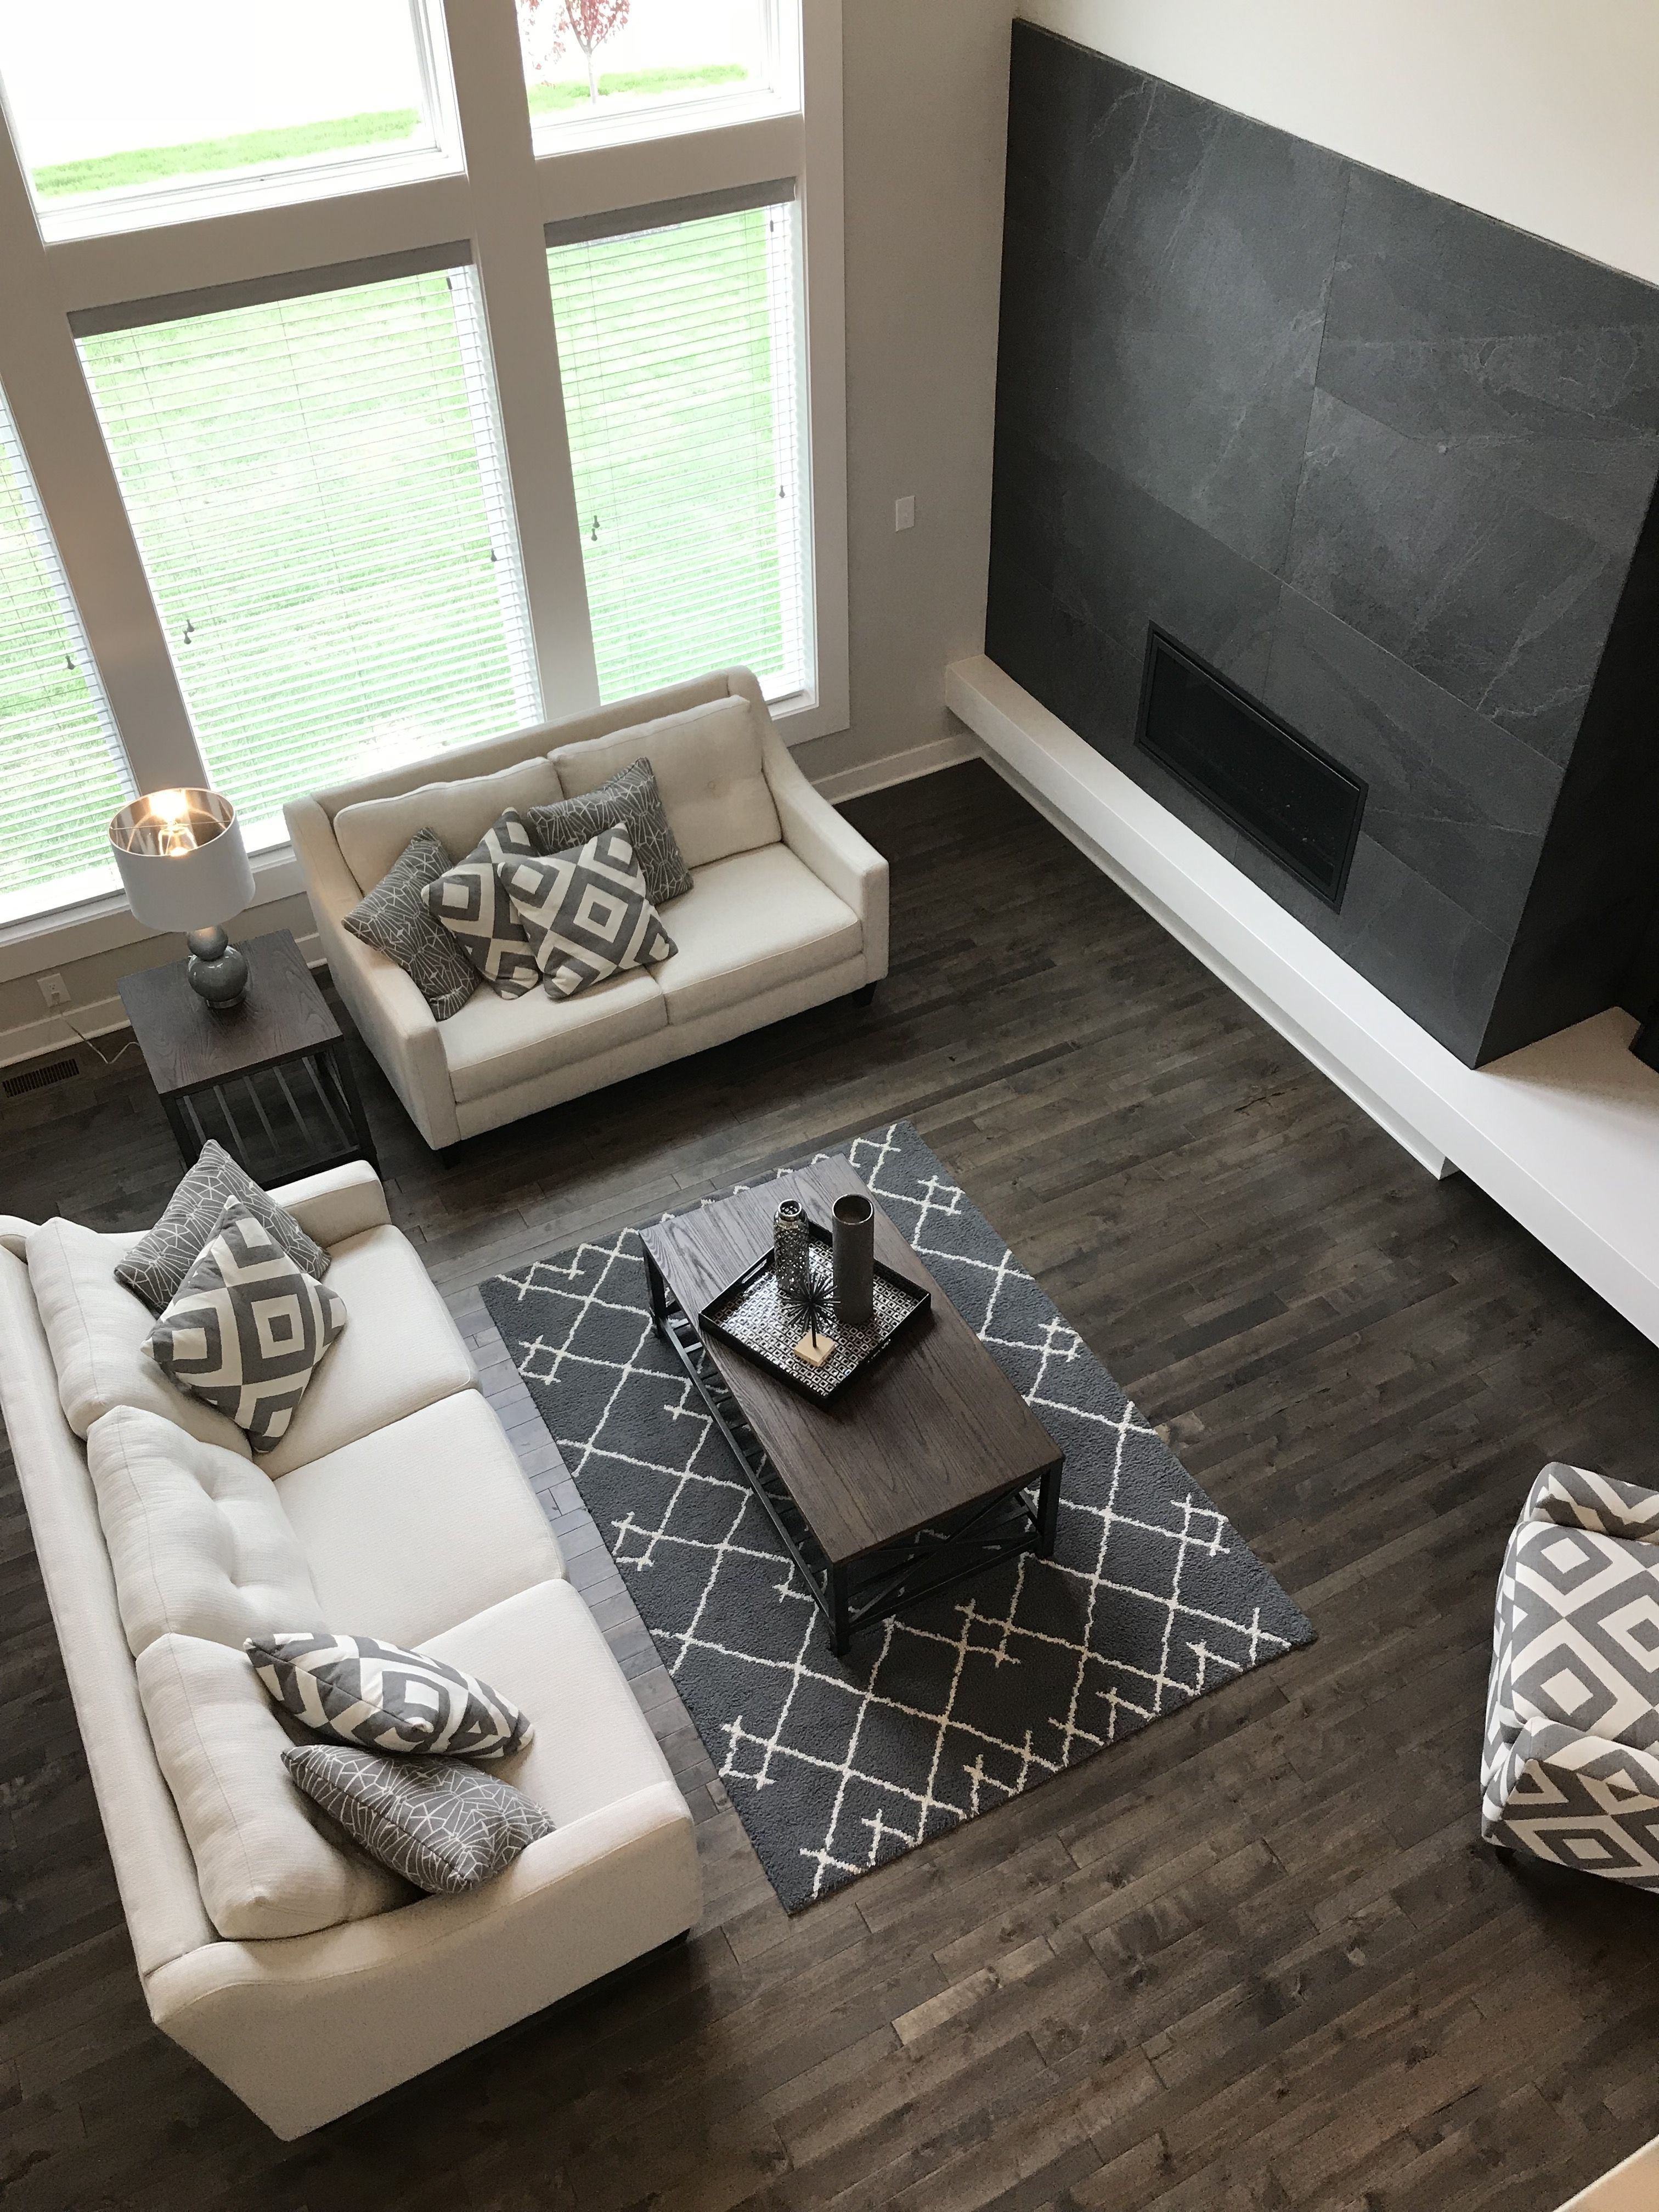 High Contrast Living Room Matching Pillows To Accent Chair Wood Top Coffee Table Kc Parade Of Homes 2018 High Contrast Living Room Wood Chair Home